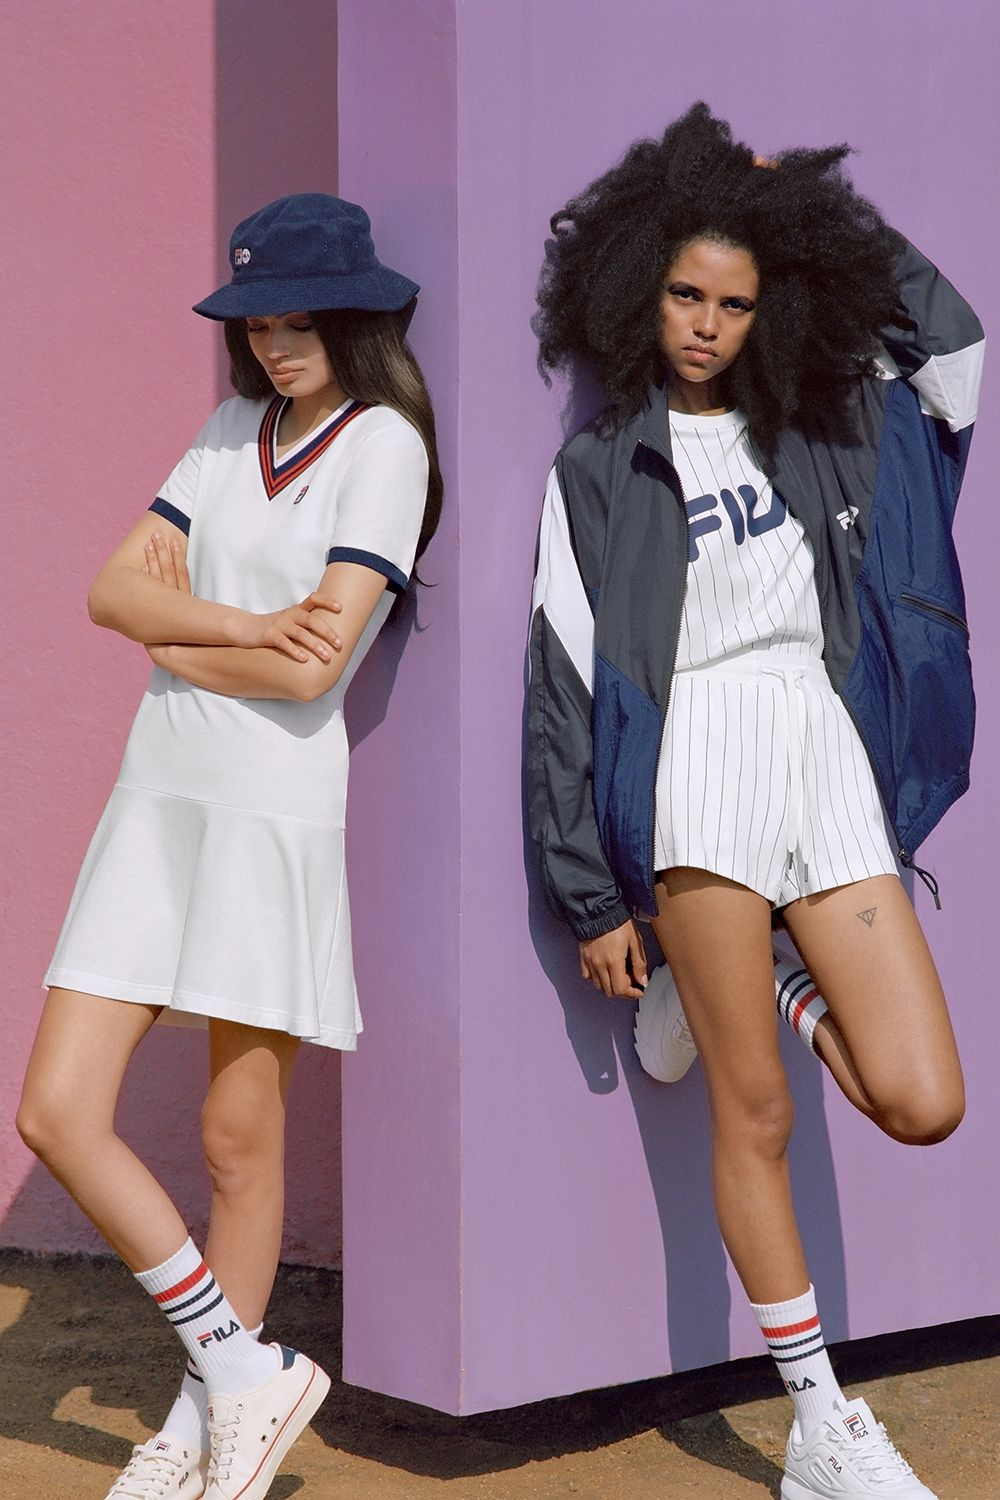 Women's Fila Spring 2018 Collection